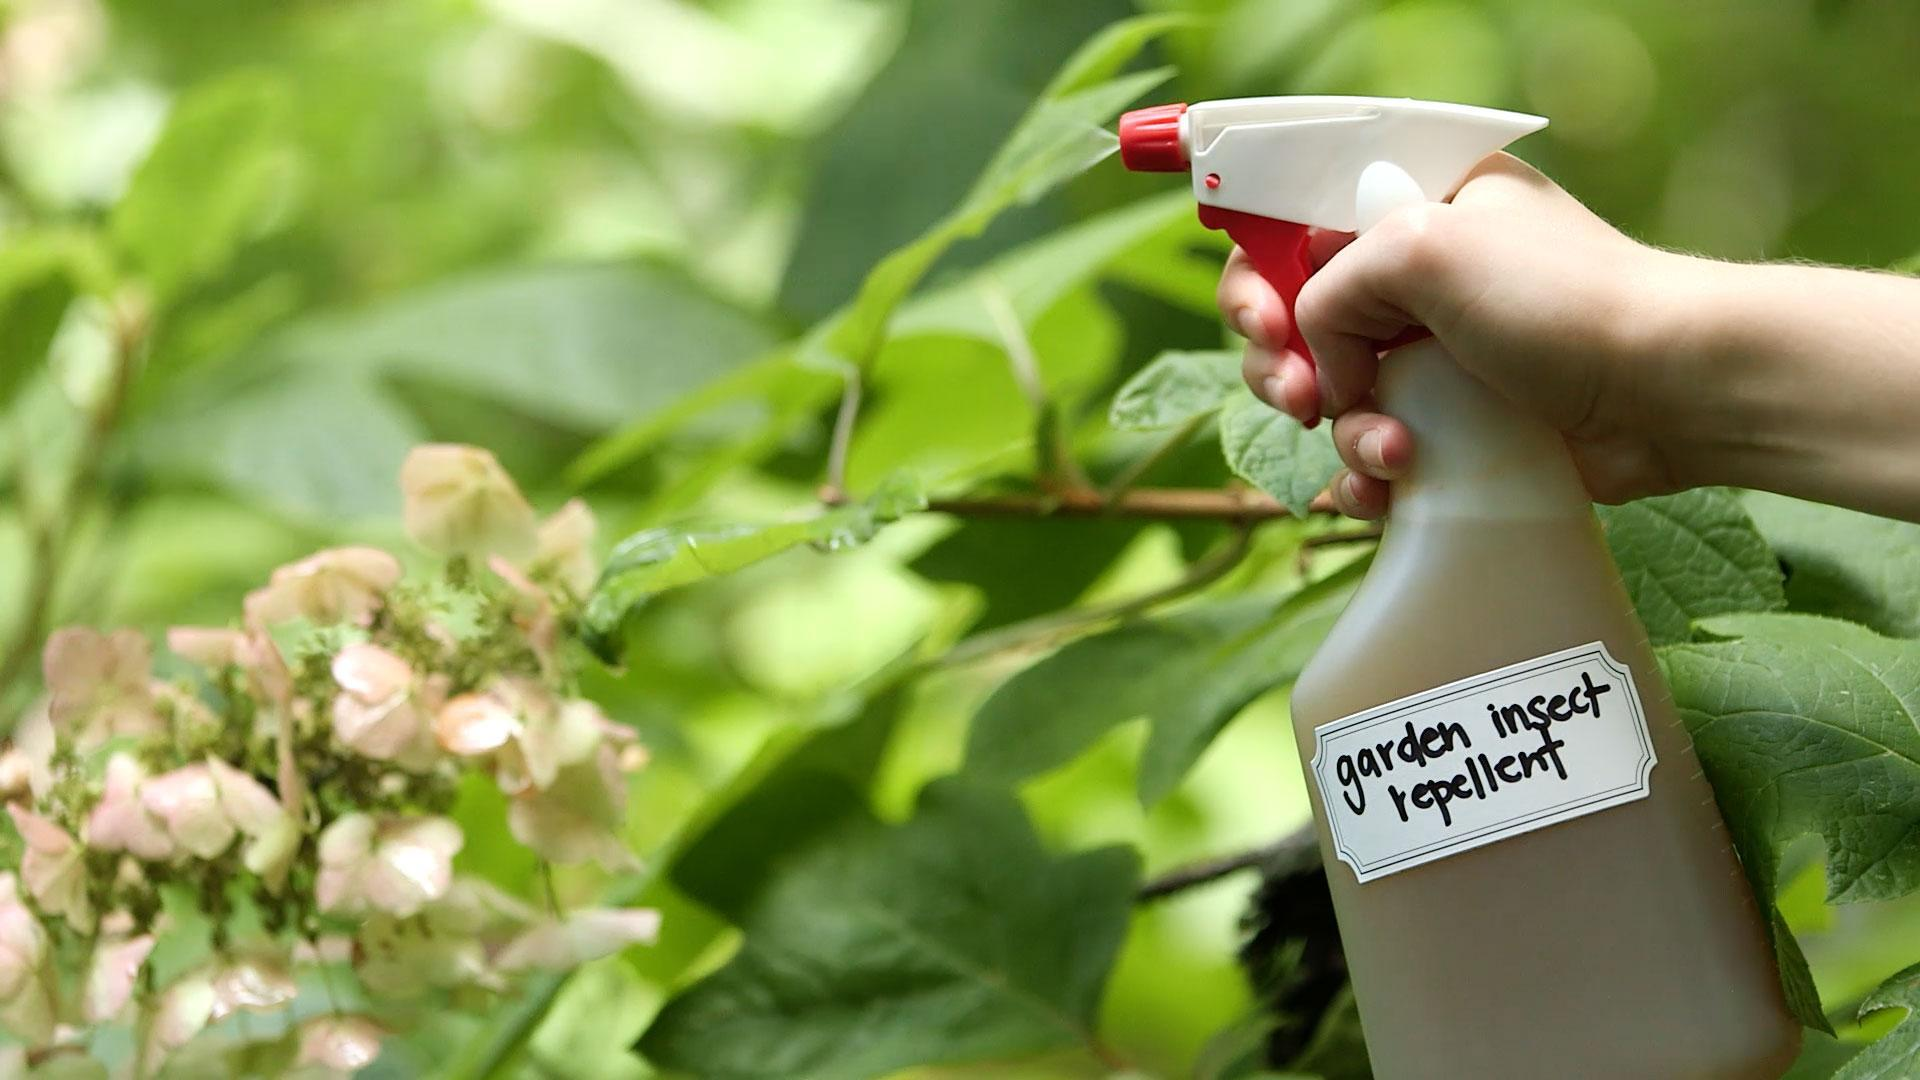 DIY Garden Insect Repellent